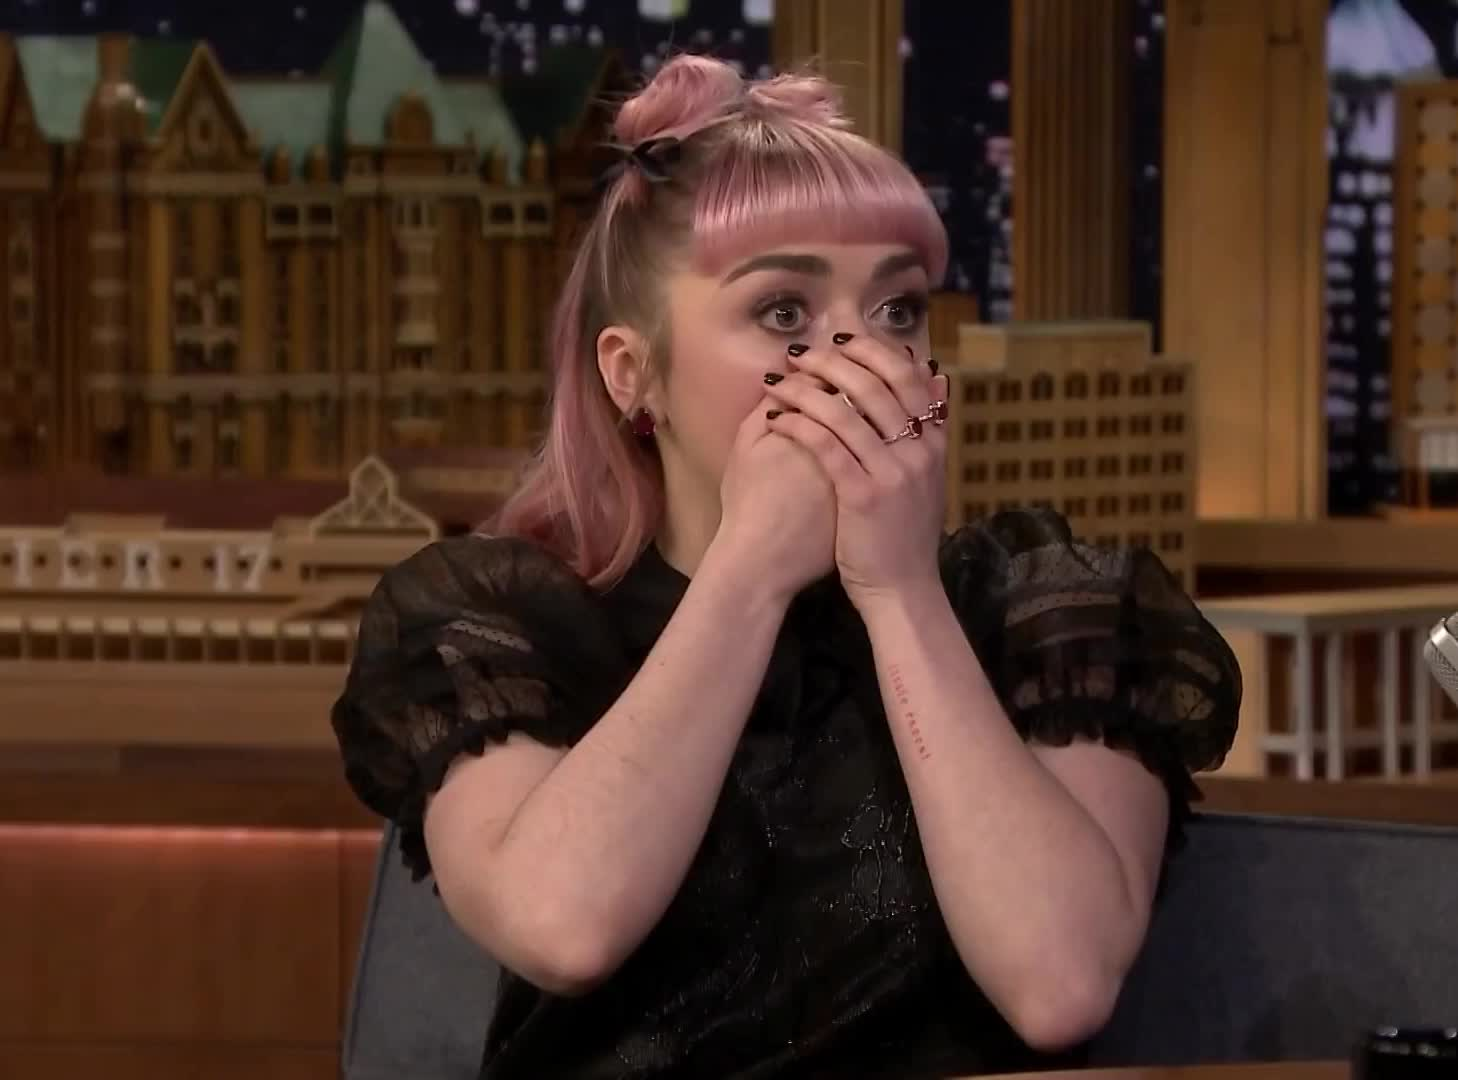 fallon, fools, game, god, got, jimmy, maisie, major, my, no, of, oh, omg, prank, shock, shocked, spoiler, stop, thrones, williams, Maisie Williams Accidentally Drops a Major Spoiler in Game of Thrones' Final Season GIFs